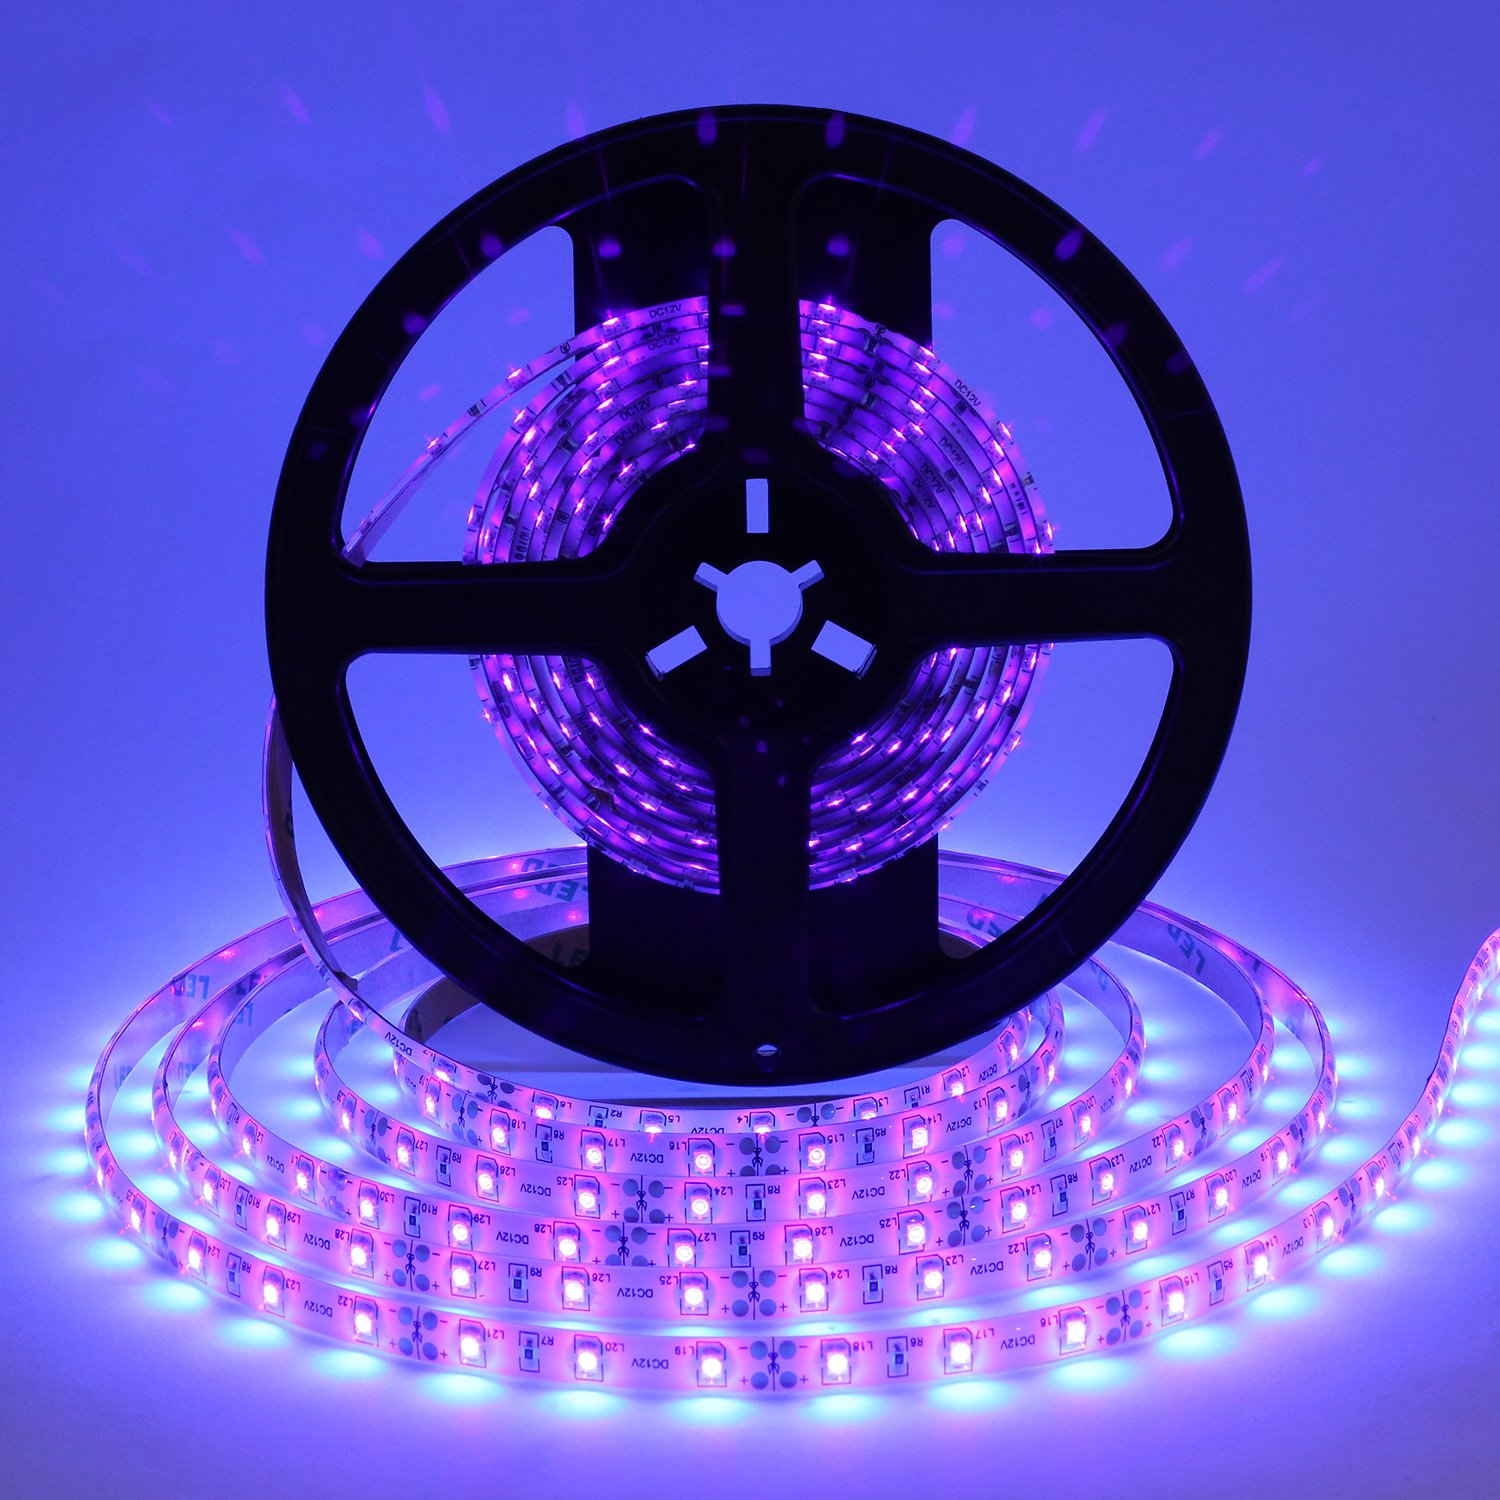 Foxdam Black light Uv/Ultraviolet Led Strip 16.4ft 3528 SMD 300Leds Waterproof IP65 with 12V 2A Power Supply LED Tape by Foxdam